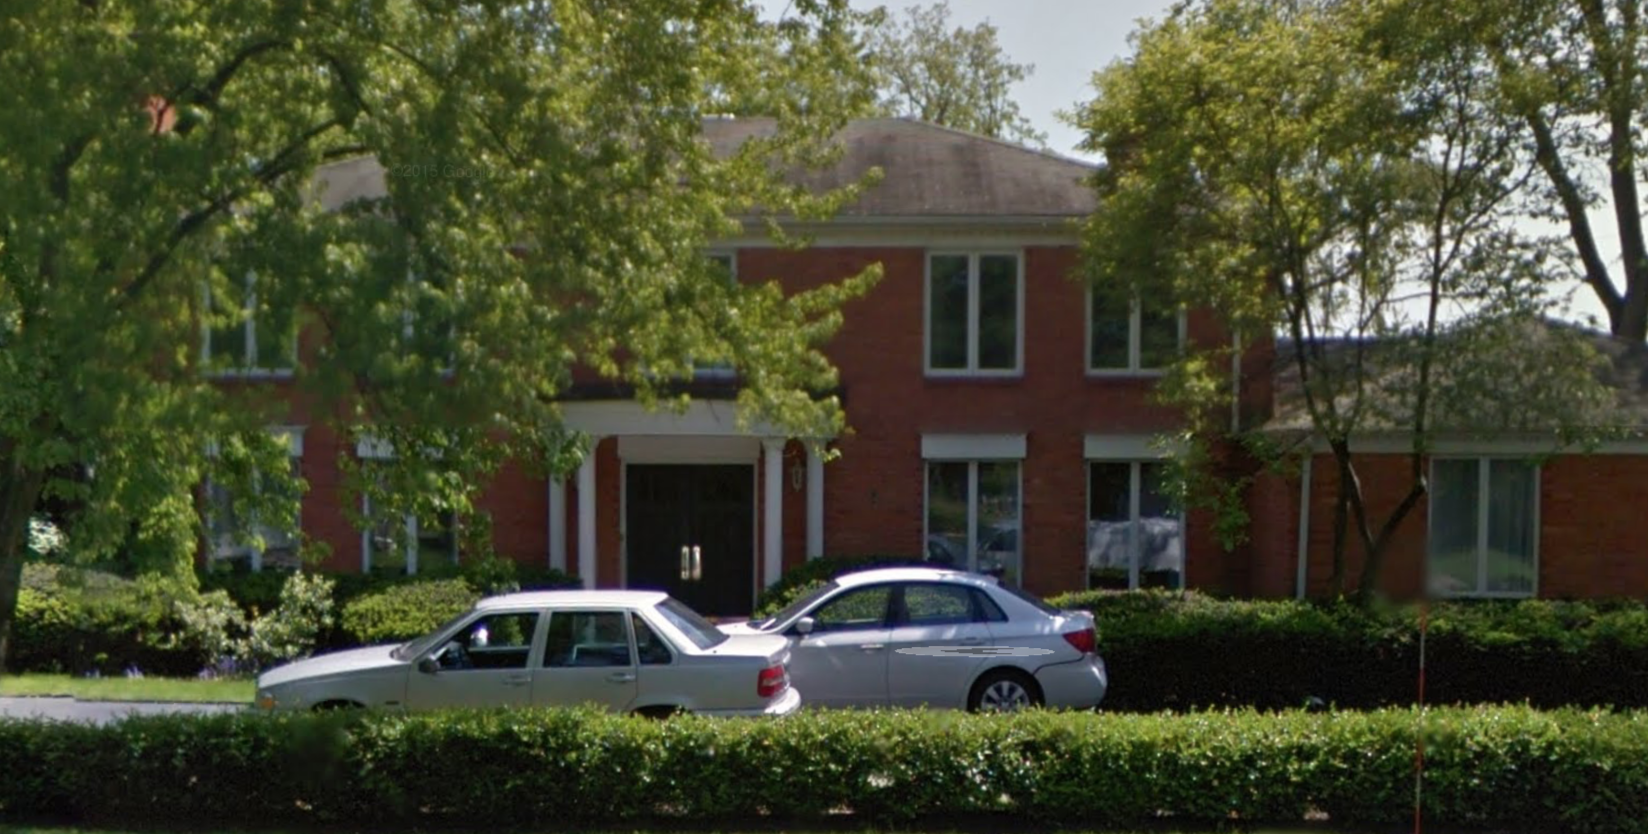 Kevin W. Graham, a Chicago police officer vying to head the officer's union, owns this Lincolnshire home. CPD has a requirement that all officers must live in Chicago.